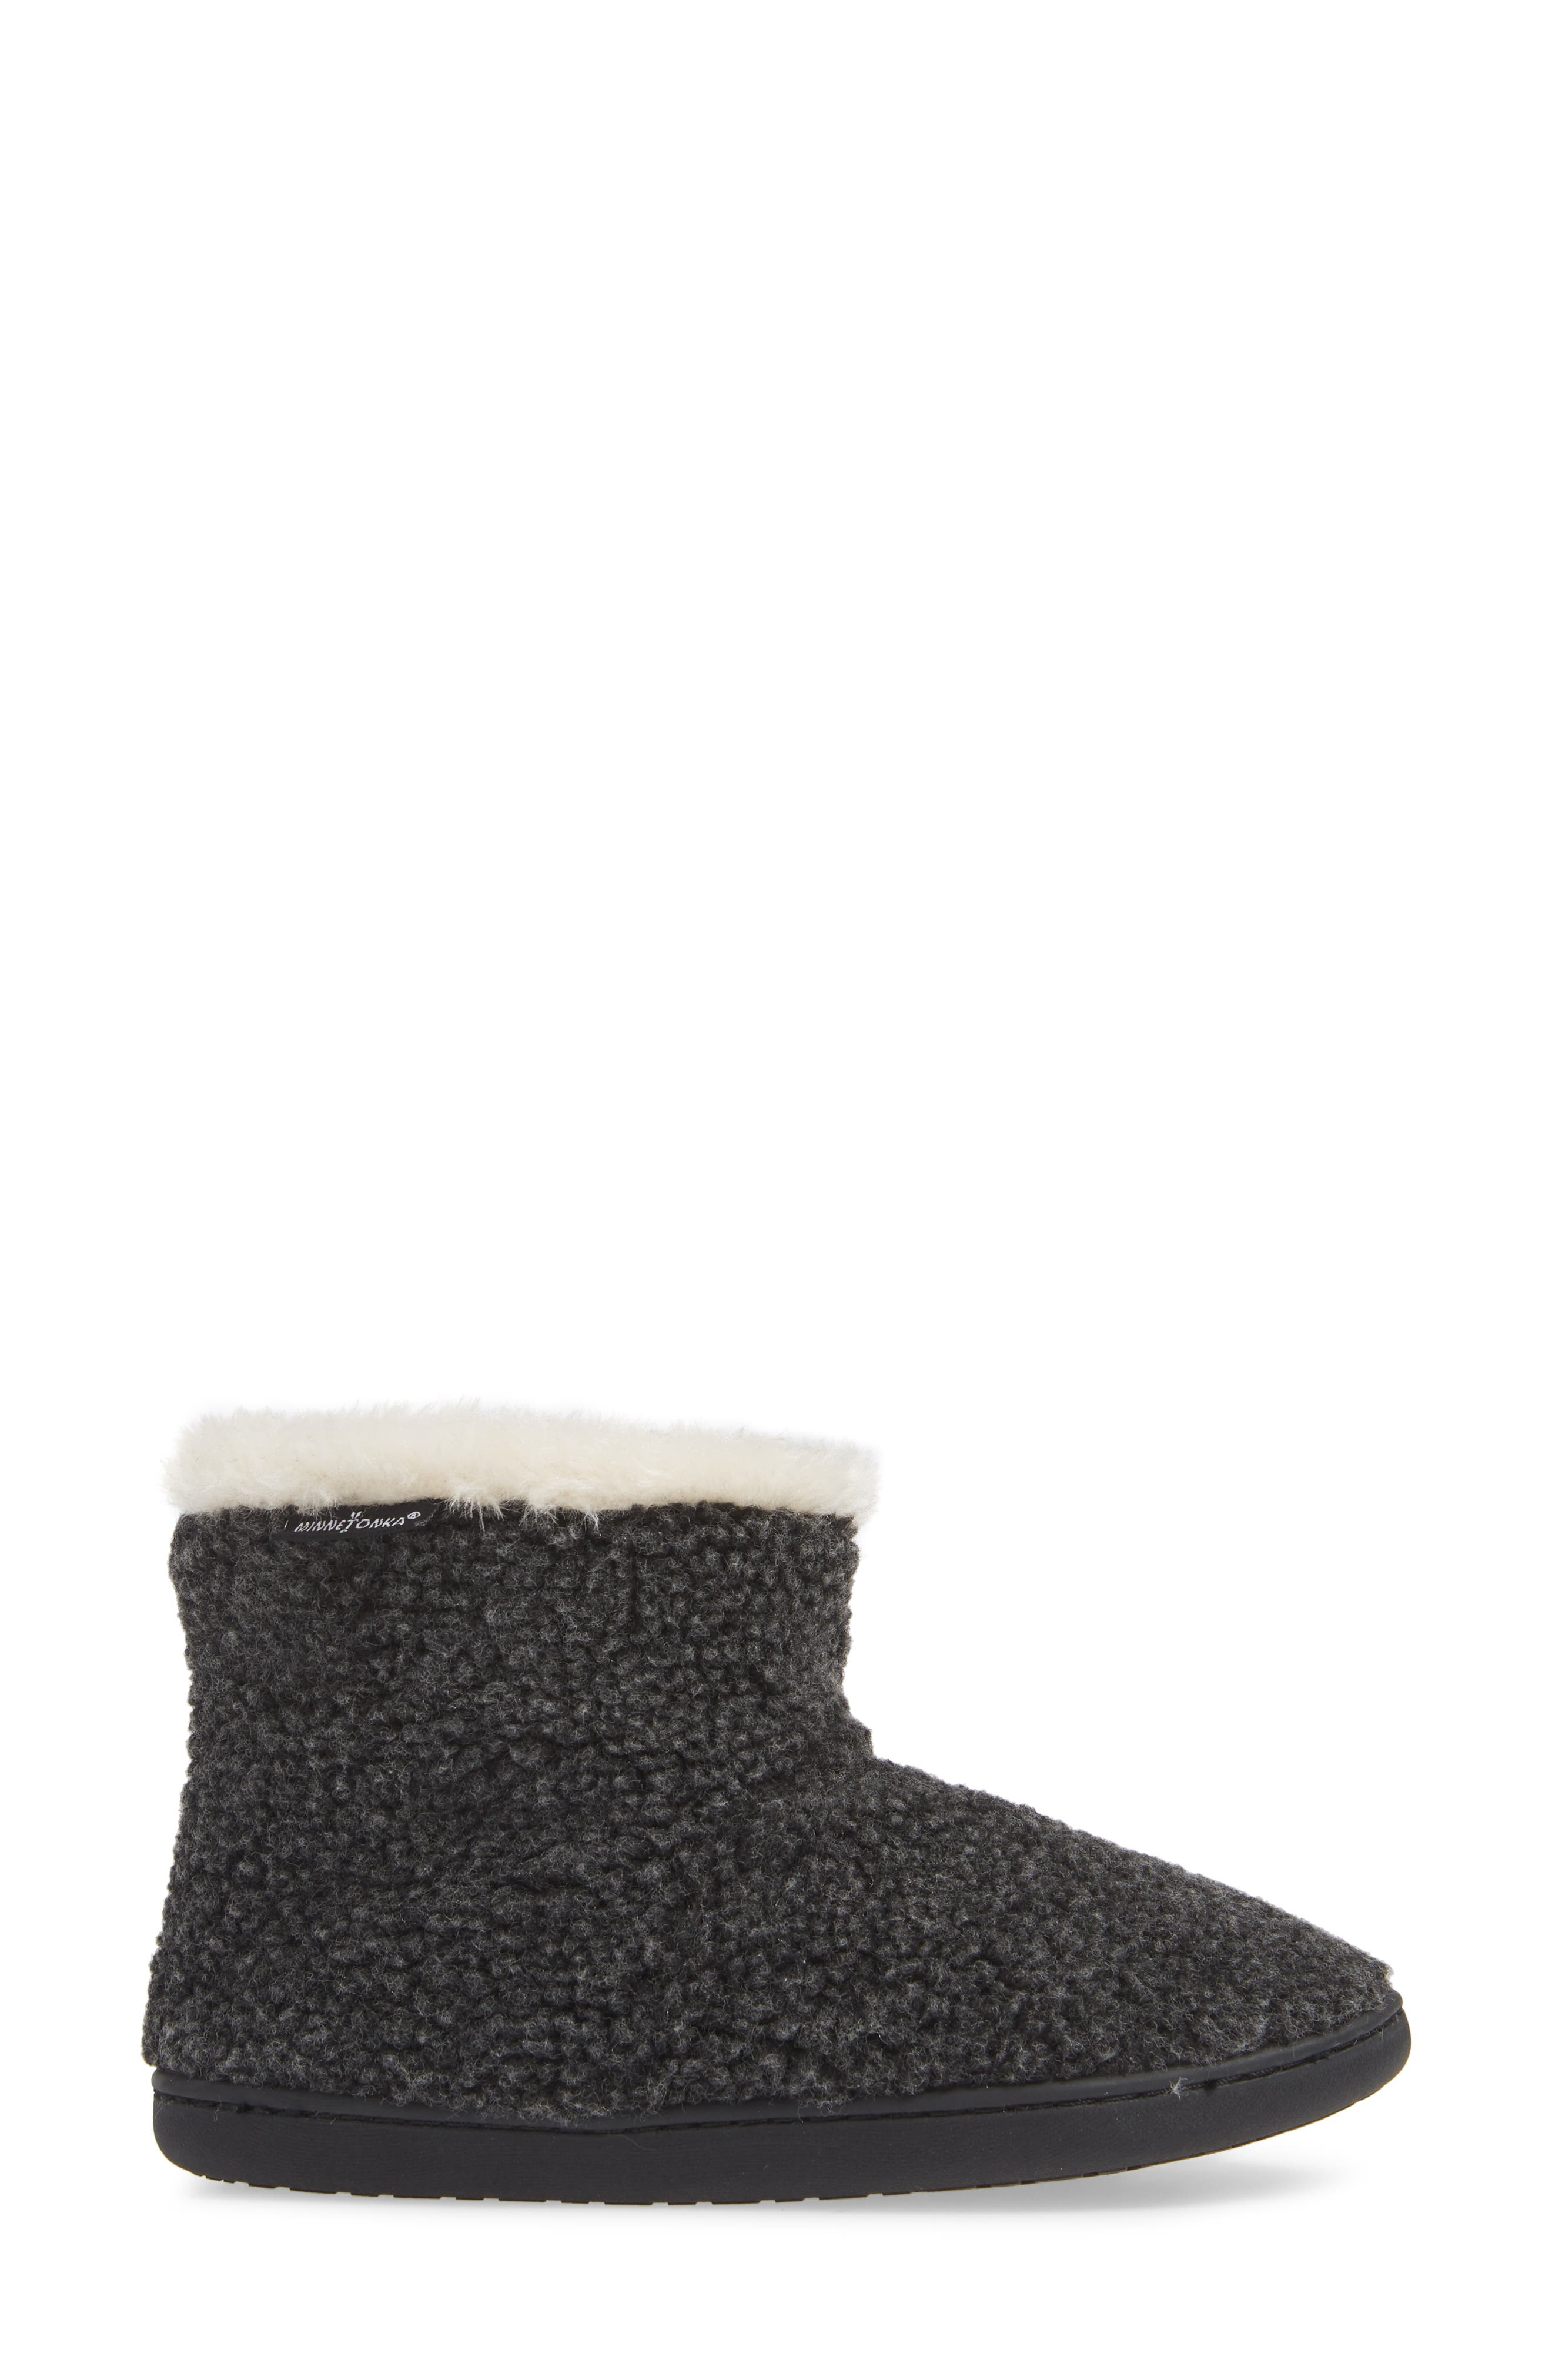 Betty Bootie,                             Alternate thumbnail 3, color,                             CHARCOAL BERBER